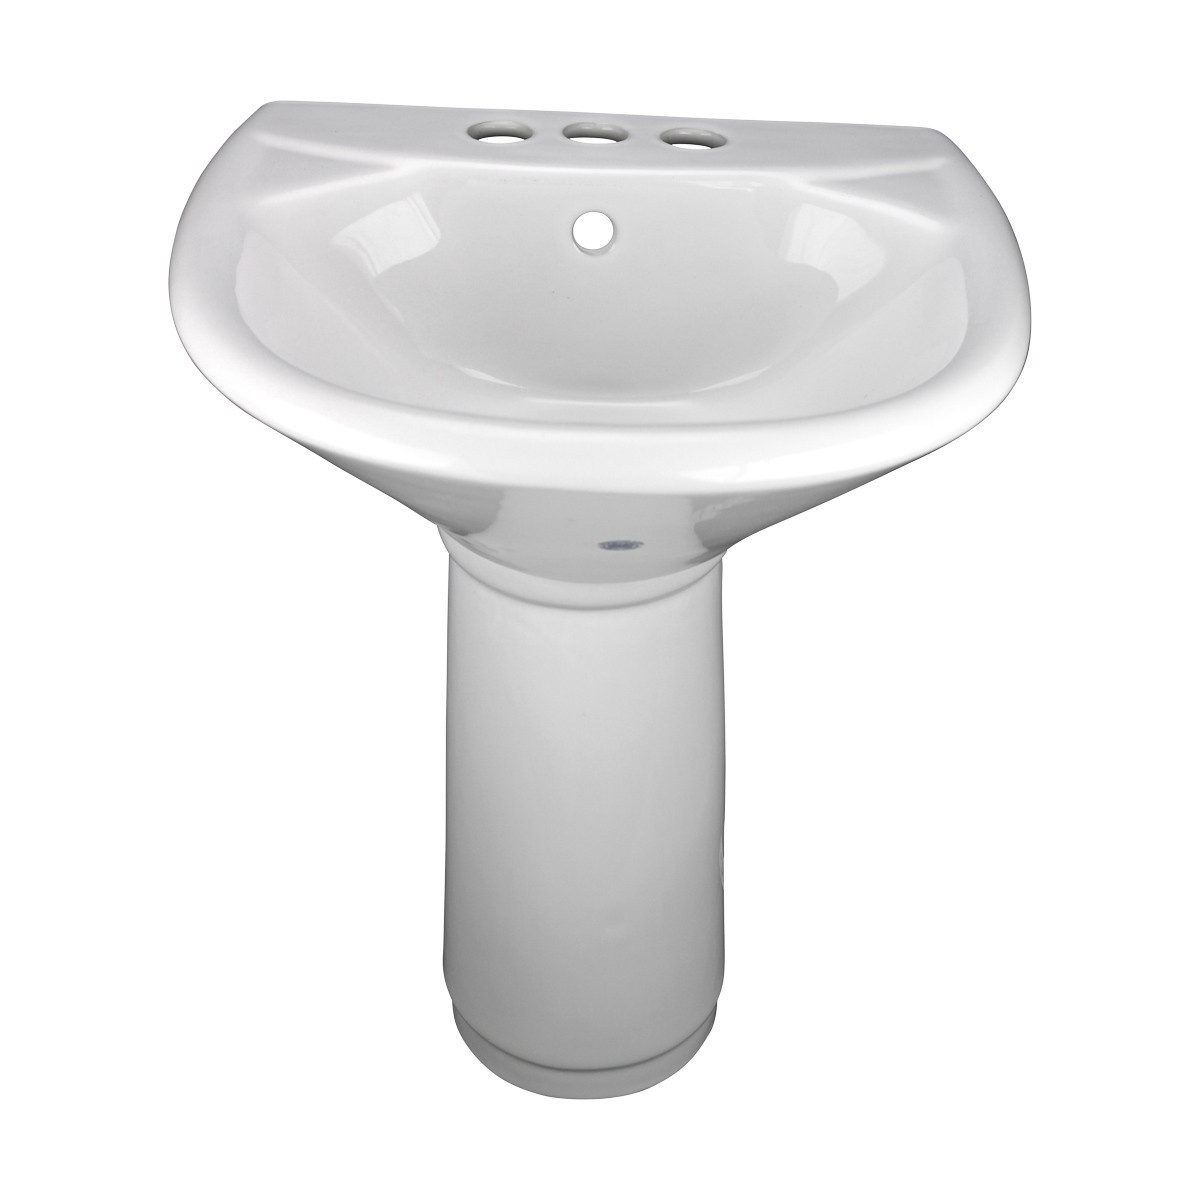 bathroom sinks online white mini porcelain pedestal sink child small china sink 11493